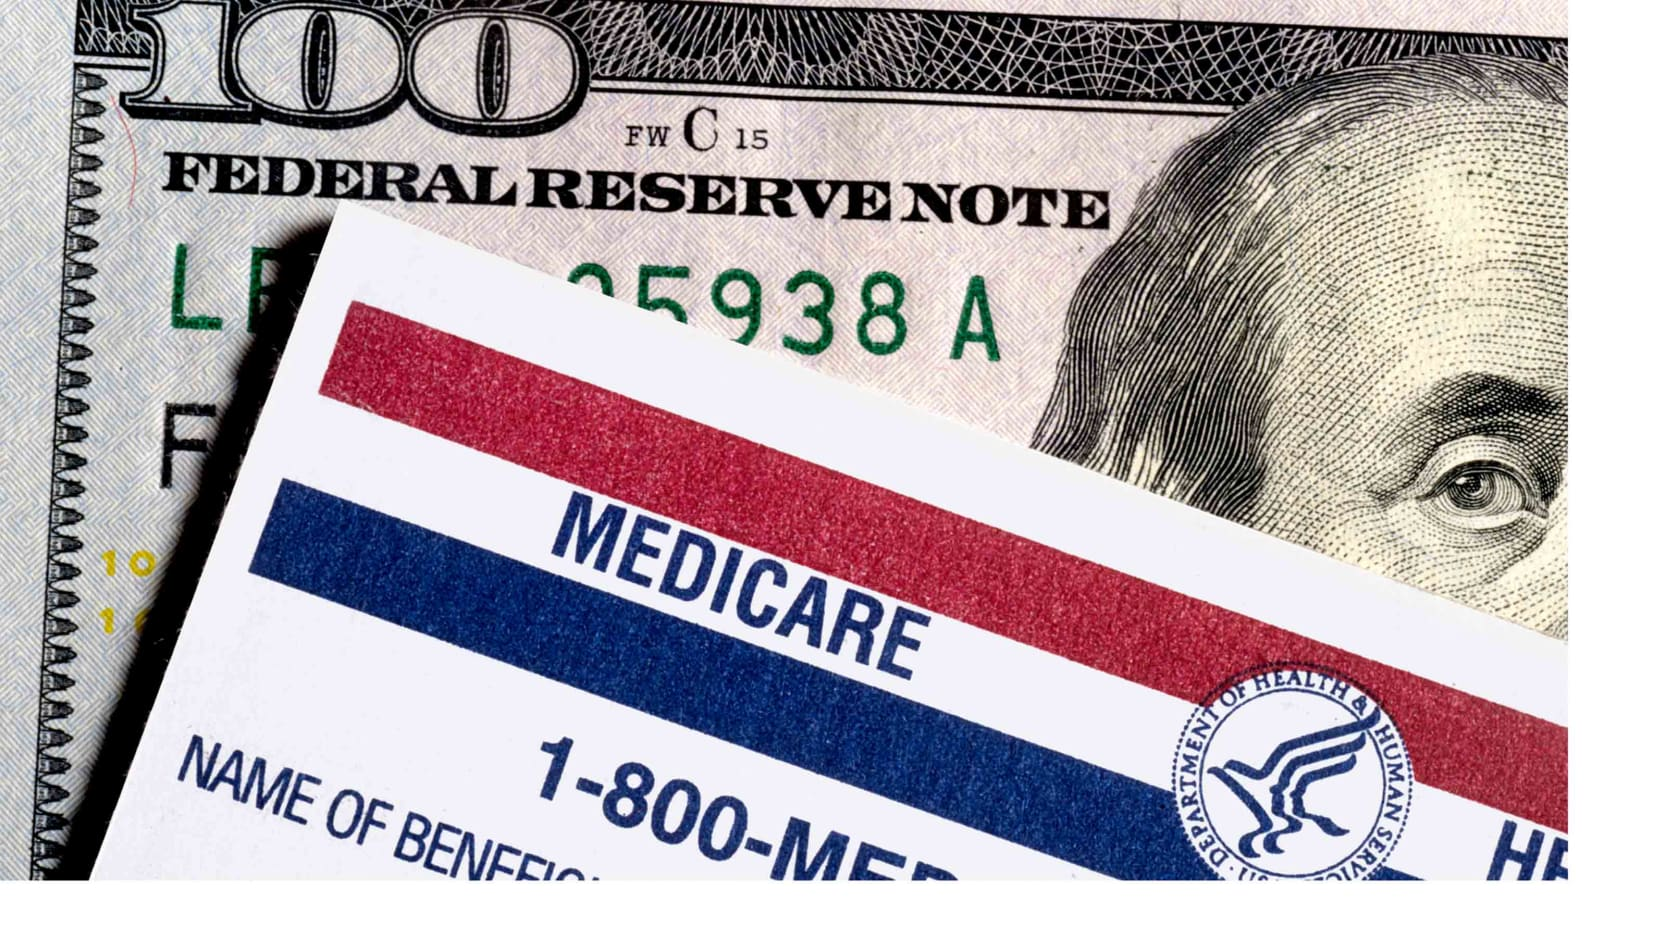 A US $100 bill and a Medicare ID card.